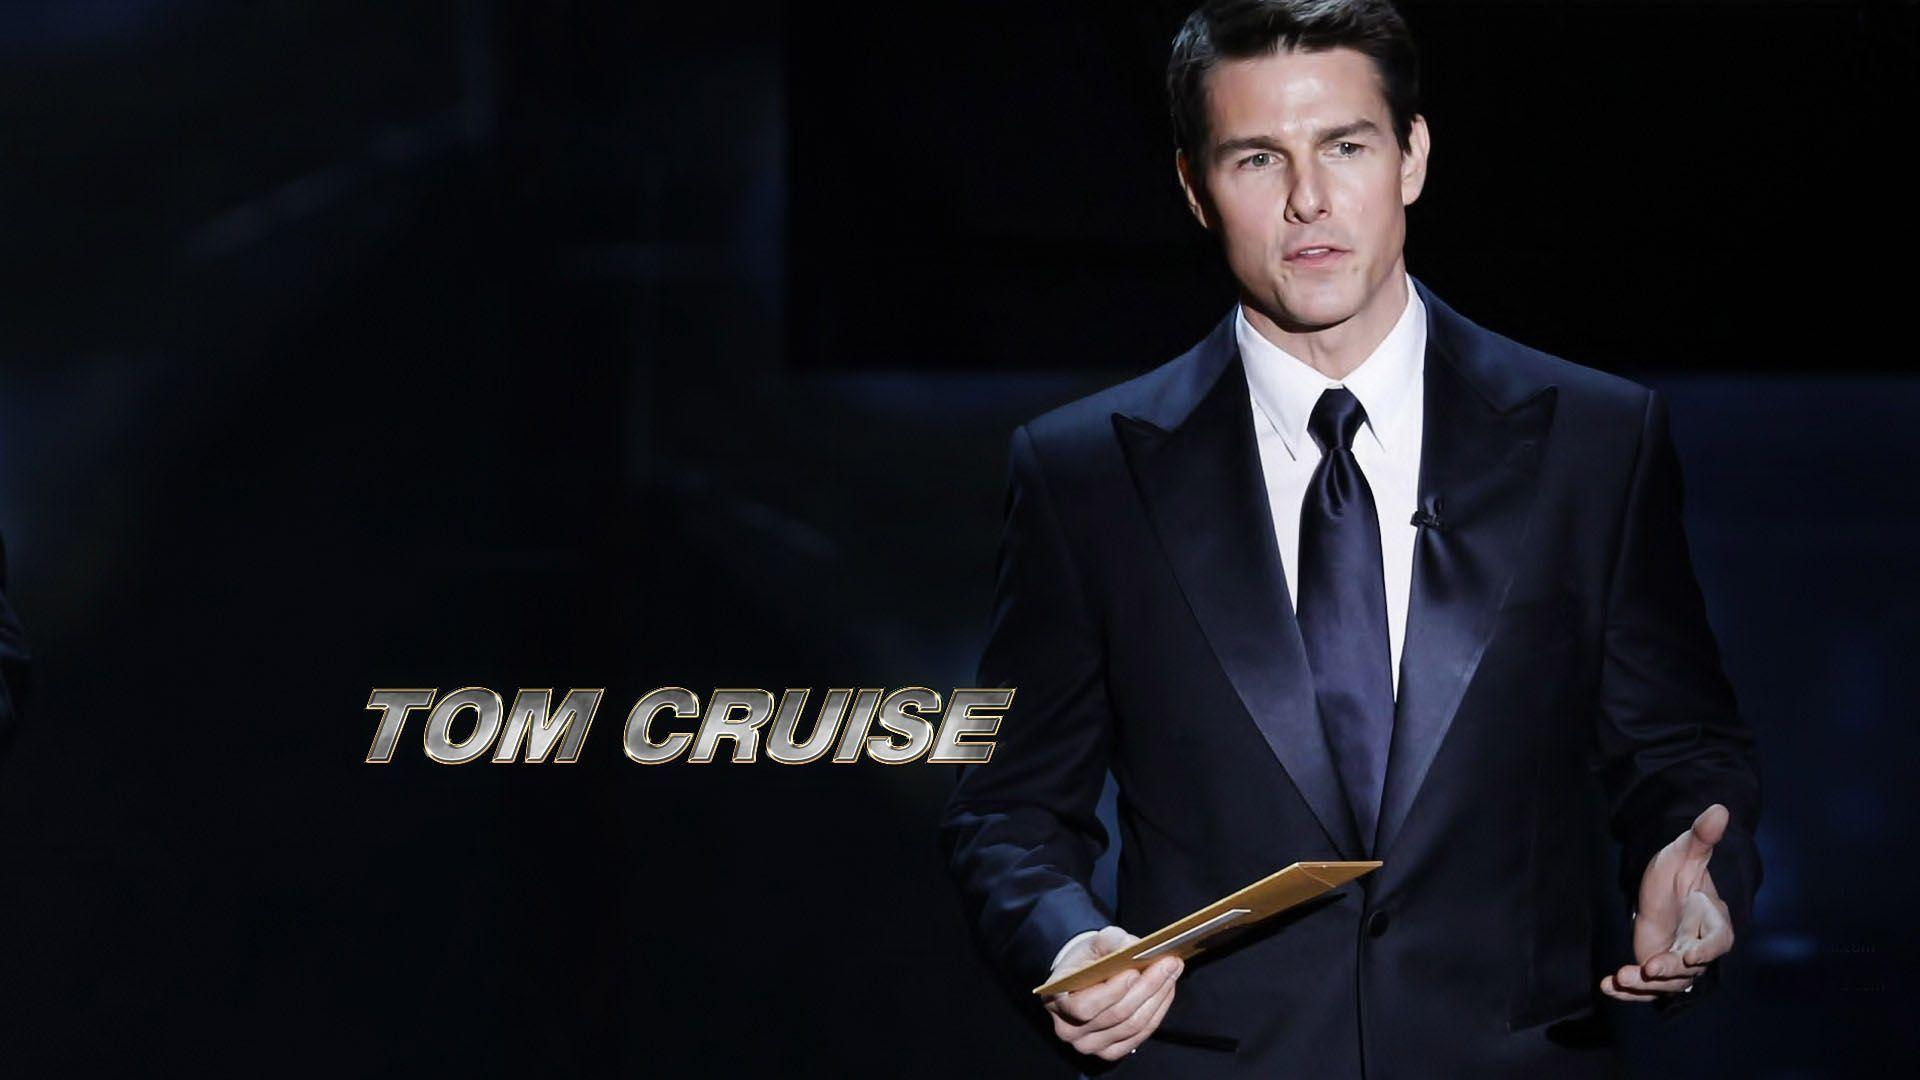 Tom Cruise Hollywood actor hd wallpaper | HD Wallpapers